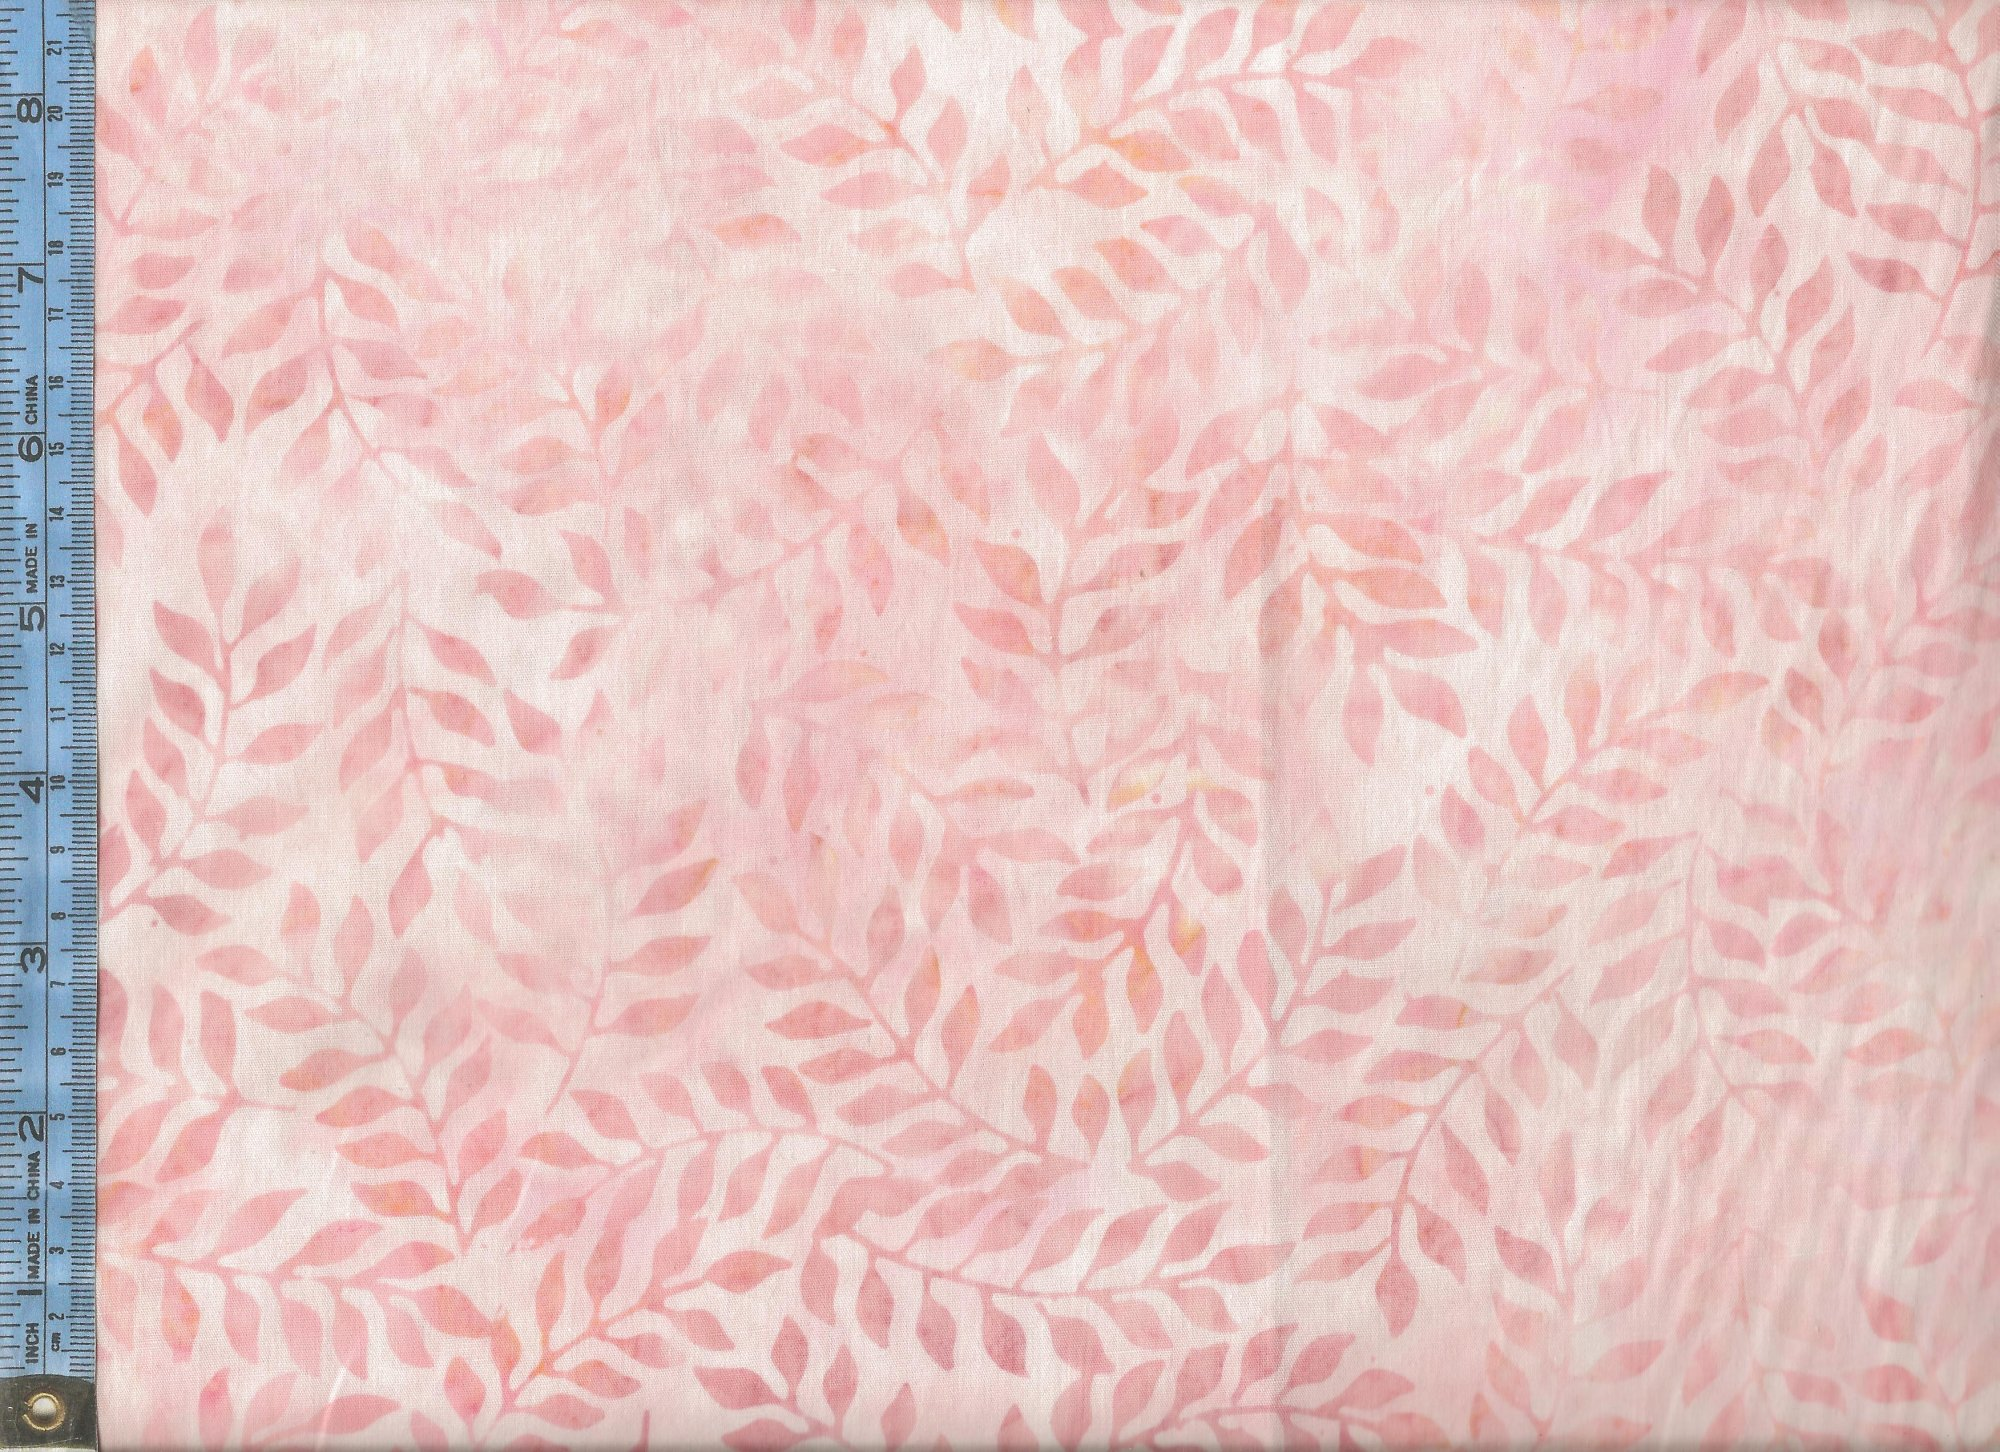 Tropical Breeze Balis - (07041-02) peachy-pink leaves on pink background